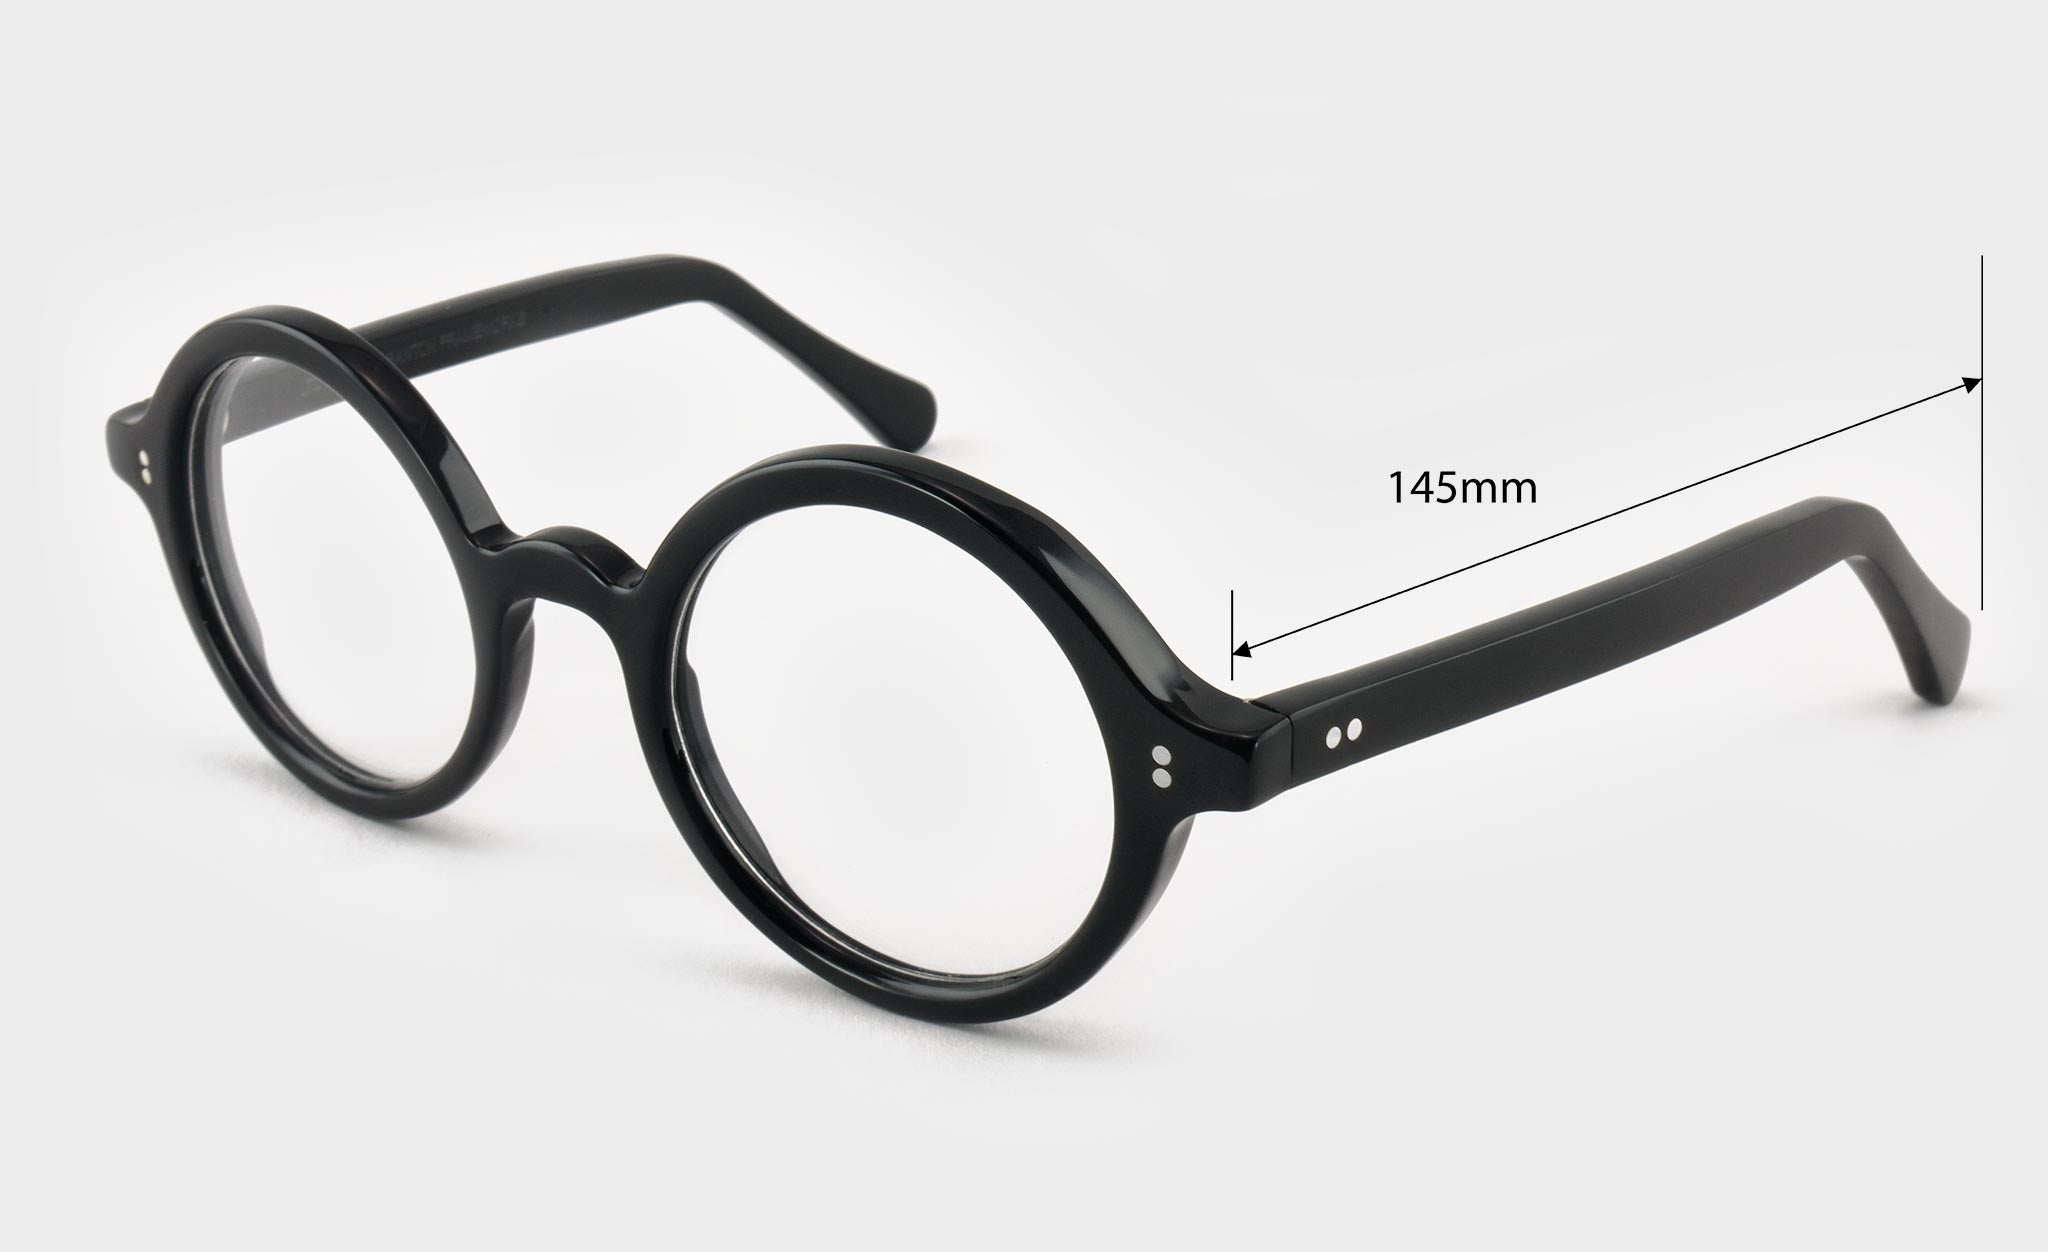 Round black glasses side view dimensions